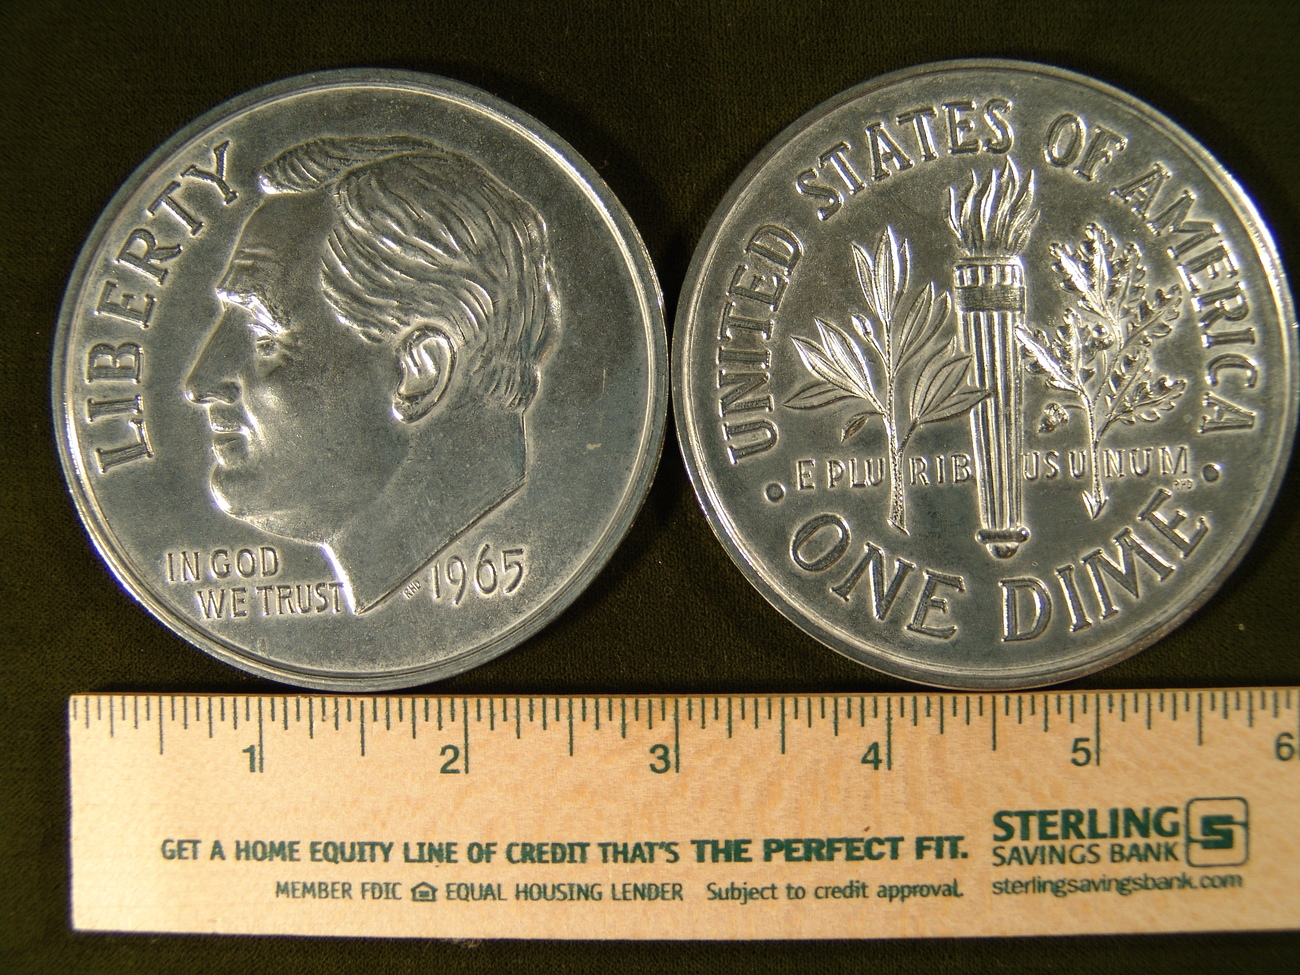 "Big 3"" Inch Metal Coin Replica of a 1965 Roosevelt Dime"